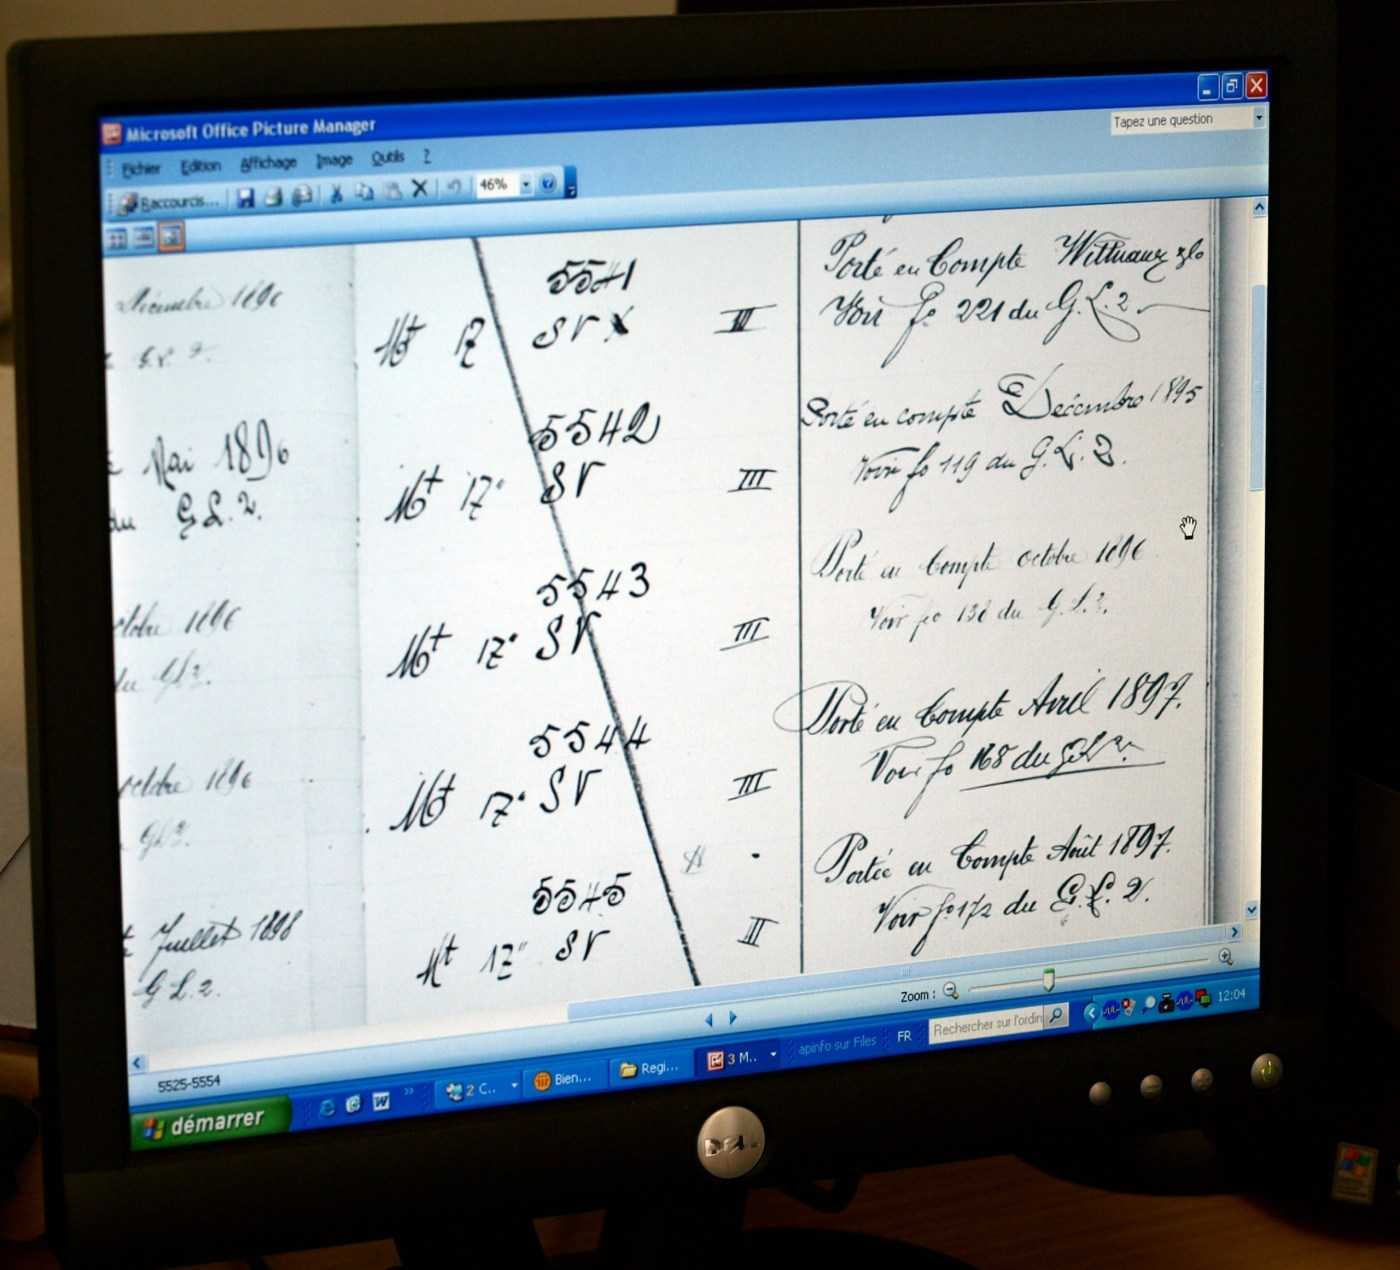 AP Service and Sales Archival records dating back to 19th century